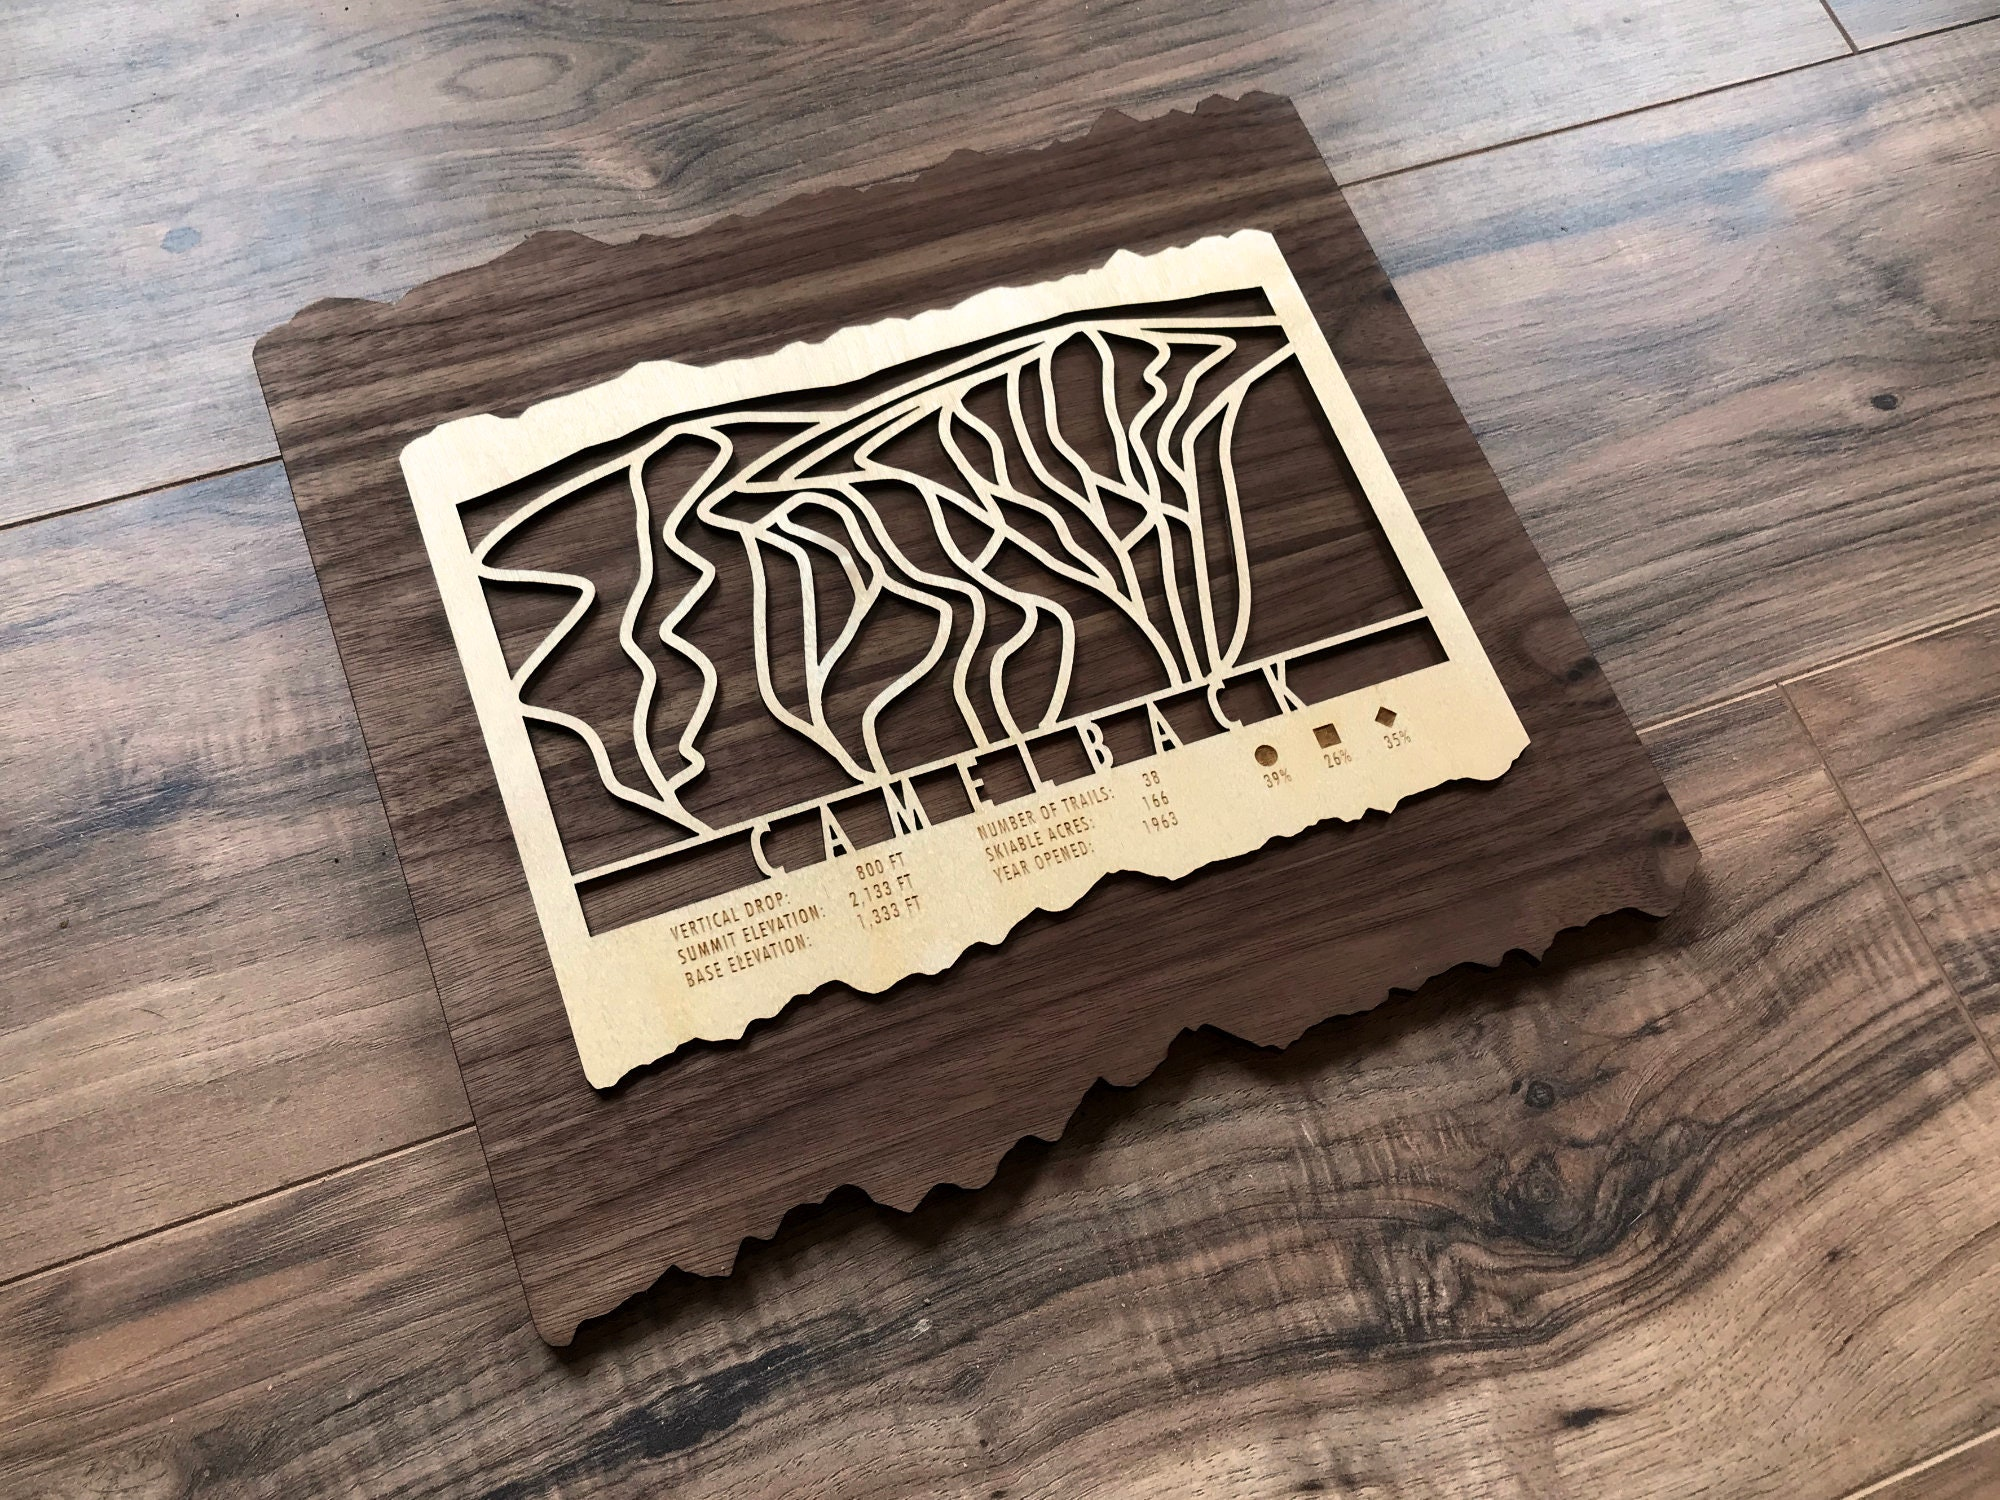 Camelback Ski Map Art - Trail Map Cut from Wood on